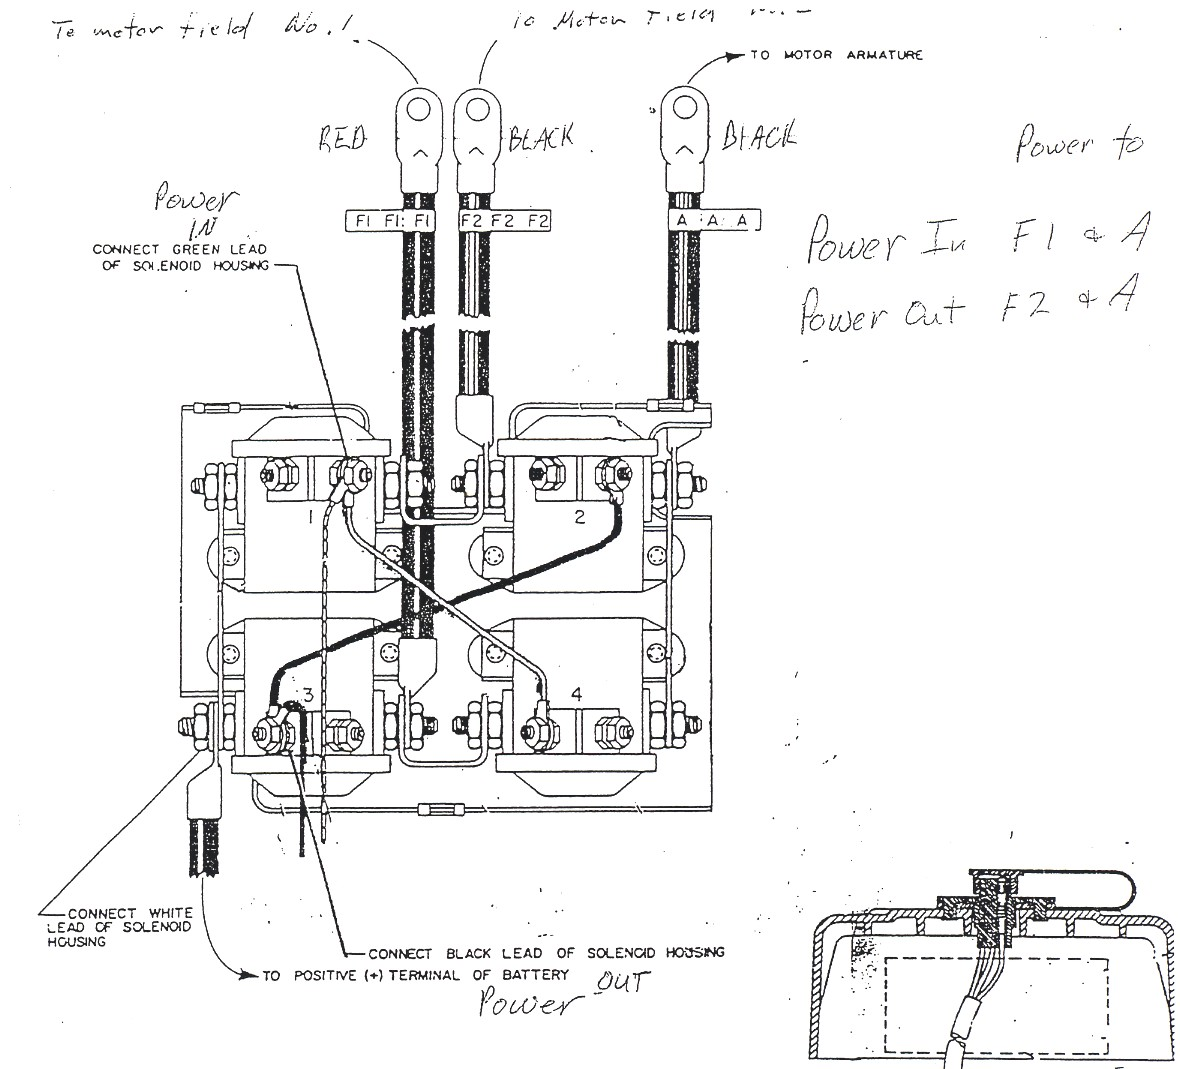 80 untitled_0689e0d674eea10f43090f1fea7c785fc8250009 need help wiring winch if someone could look over my diagram winch contactor wiring diagram at readyjetset.co